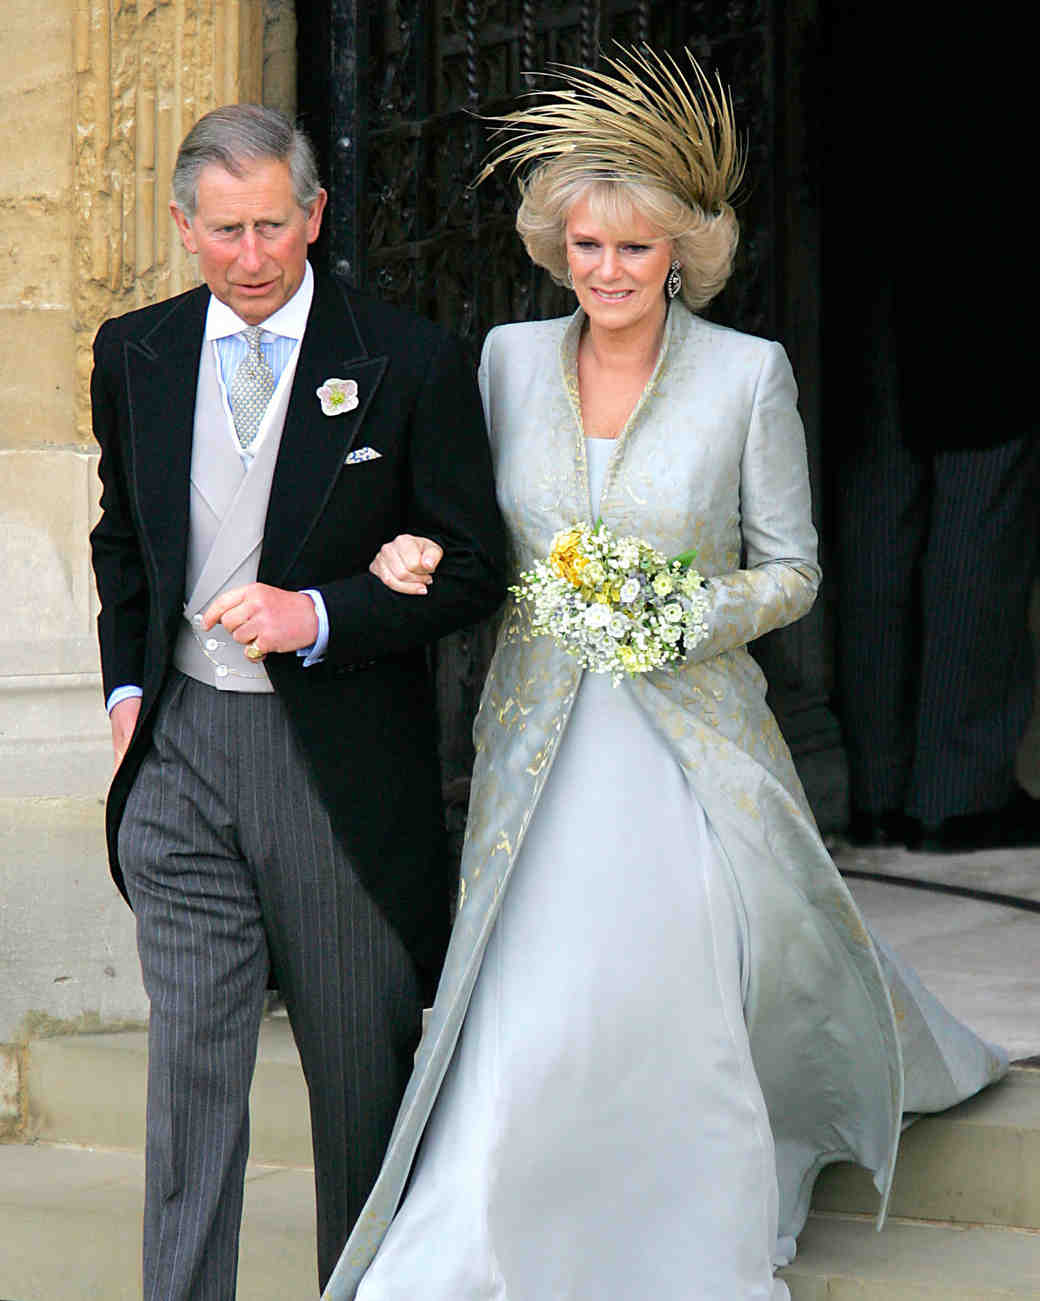 royal-wedding-dress-camilla-parker-bowles-52609456-1115.jpg